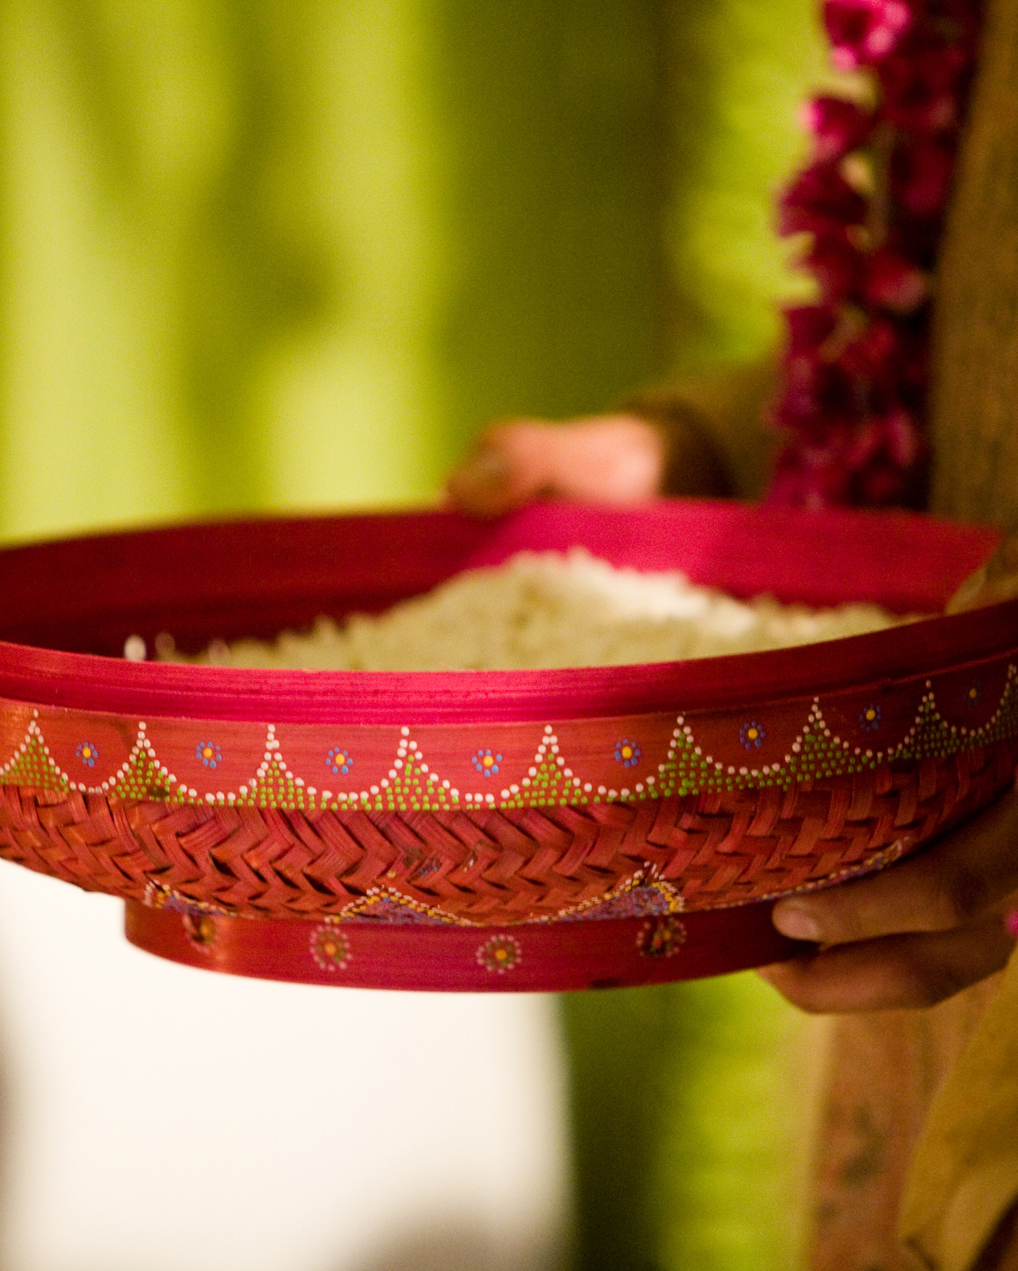 hindu-wedding-traditions-pot-of-rice-toronto-somina-gaurav-travel09-0615.jpg